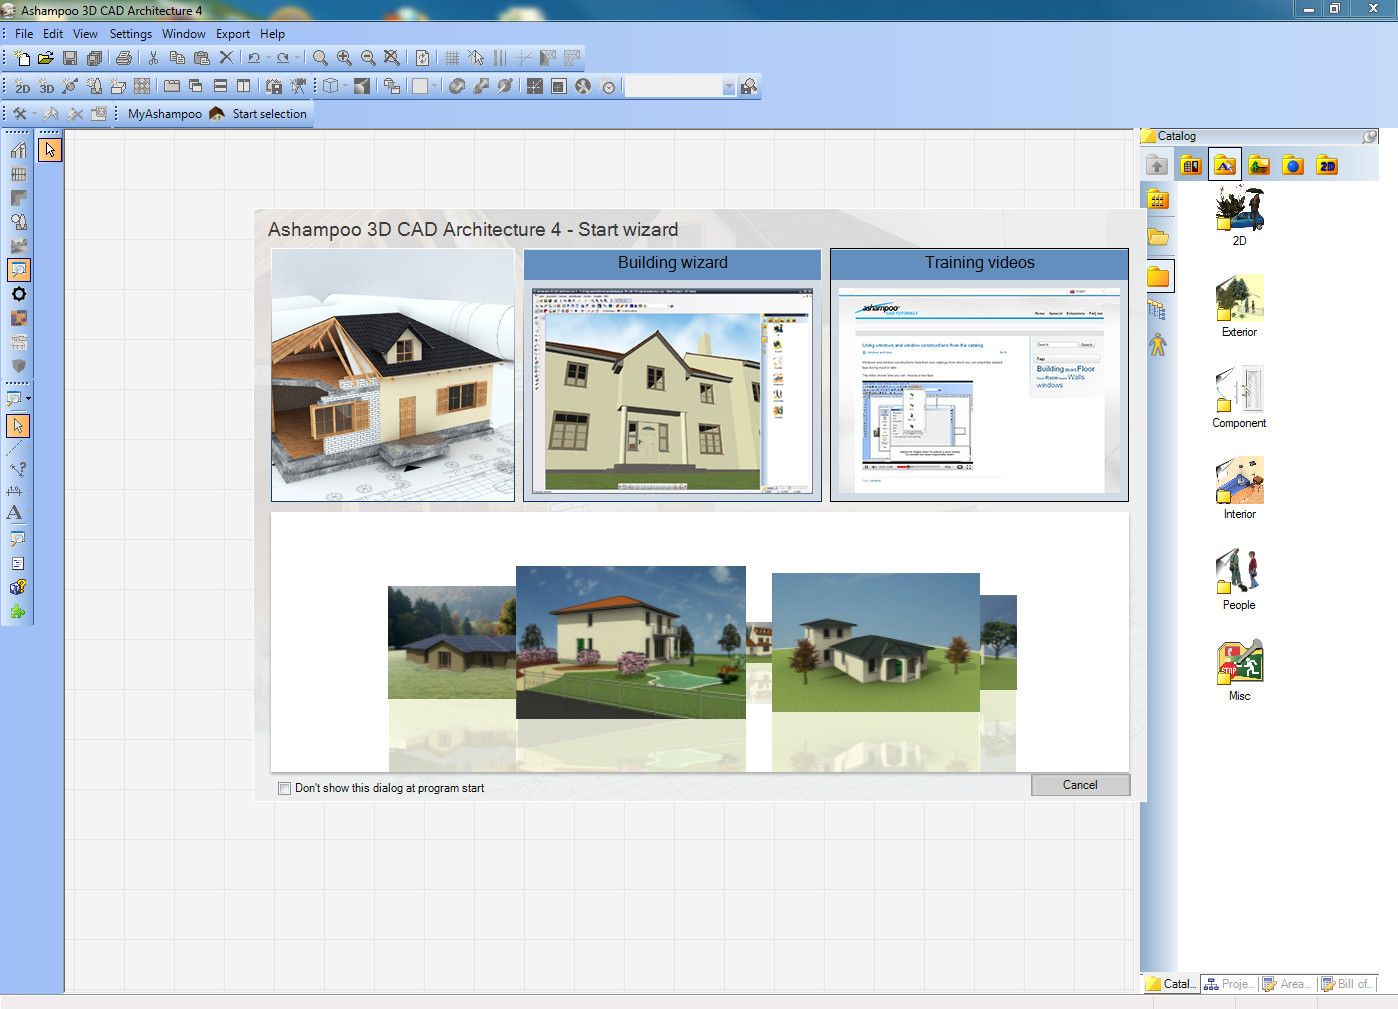 New ashampoo 3d cad architecture 4 best software 4 3d architect software free download